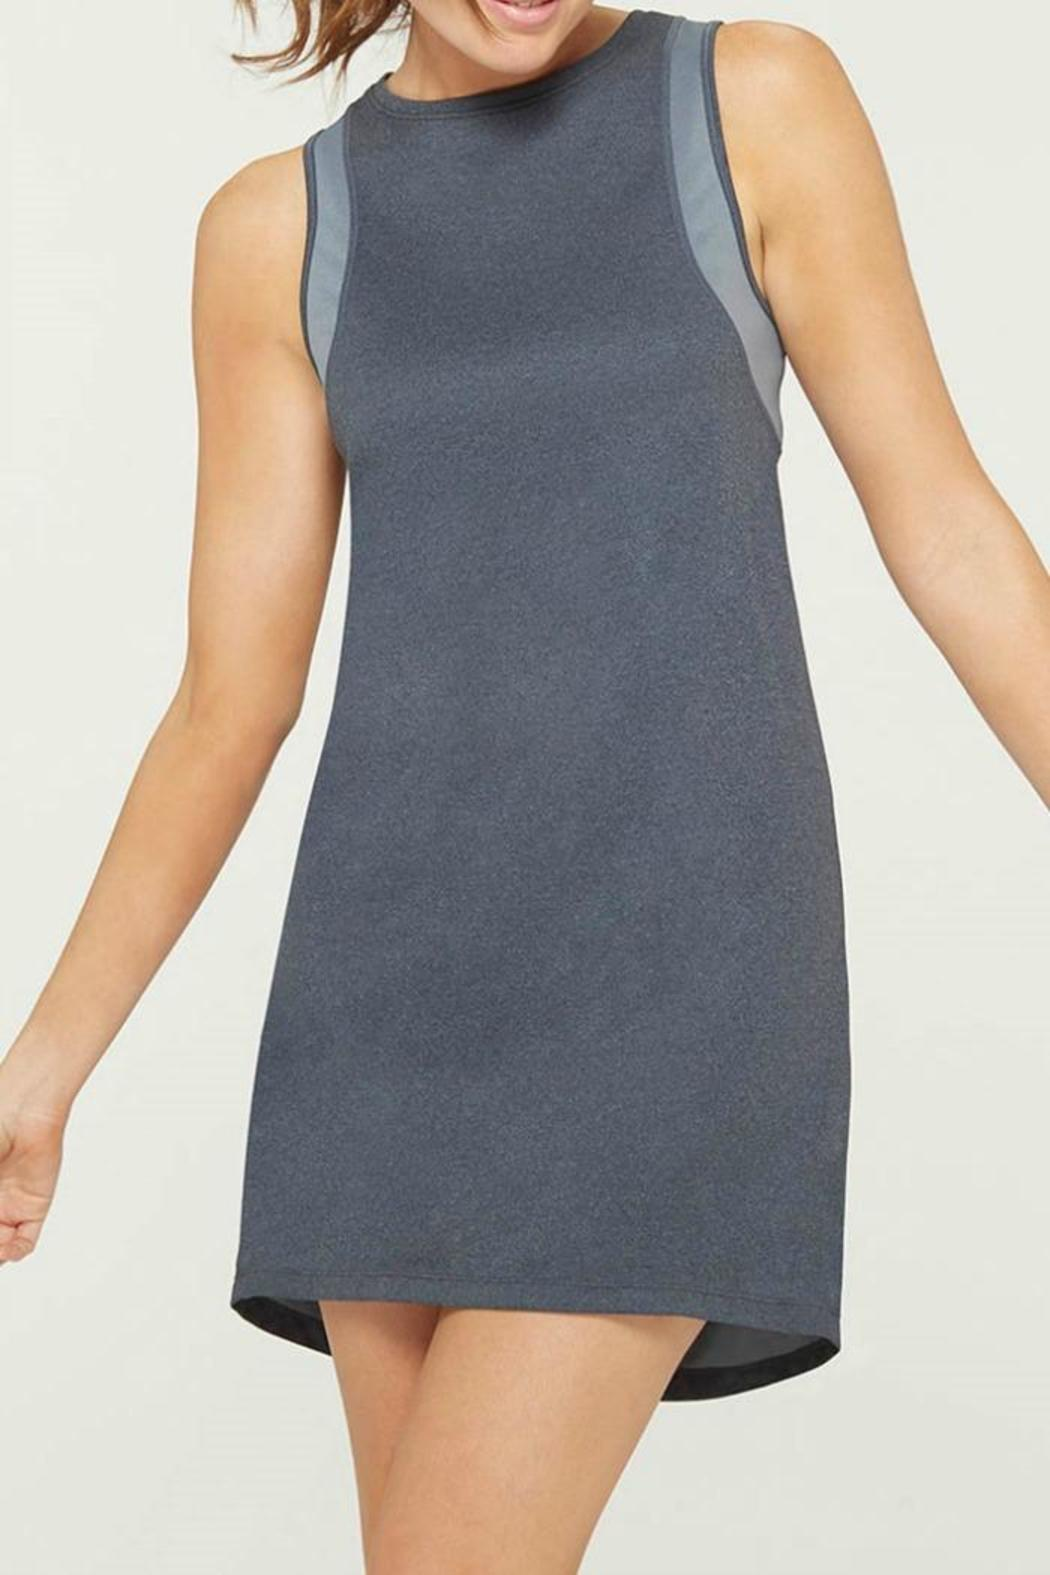 MPG Sport Grey Tank Dress - Main Image